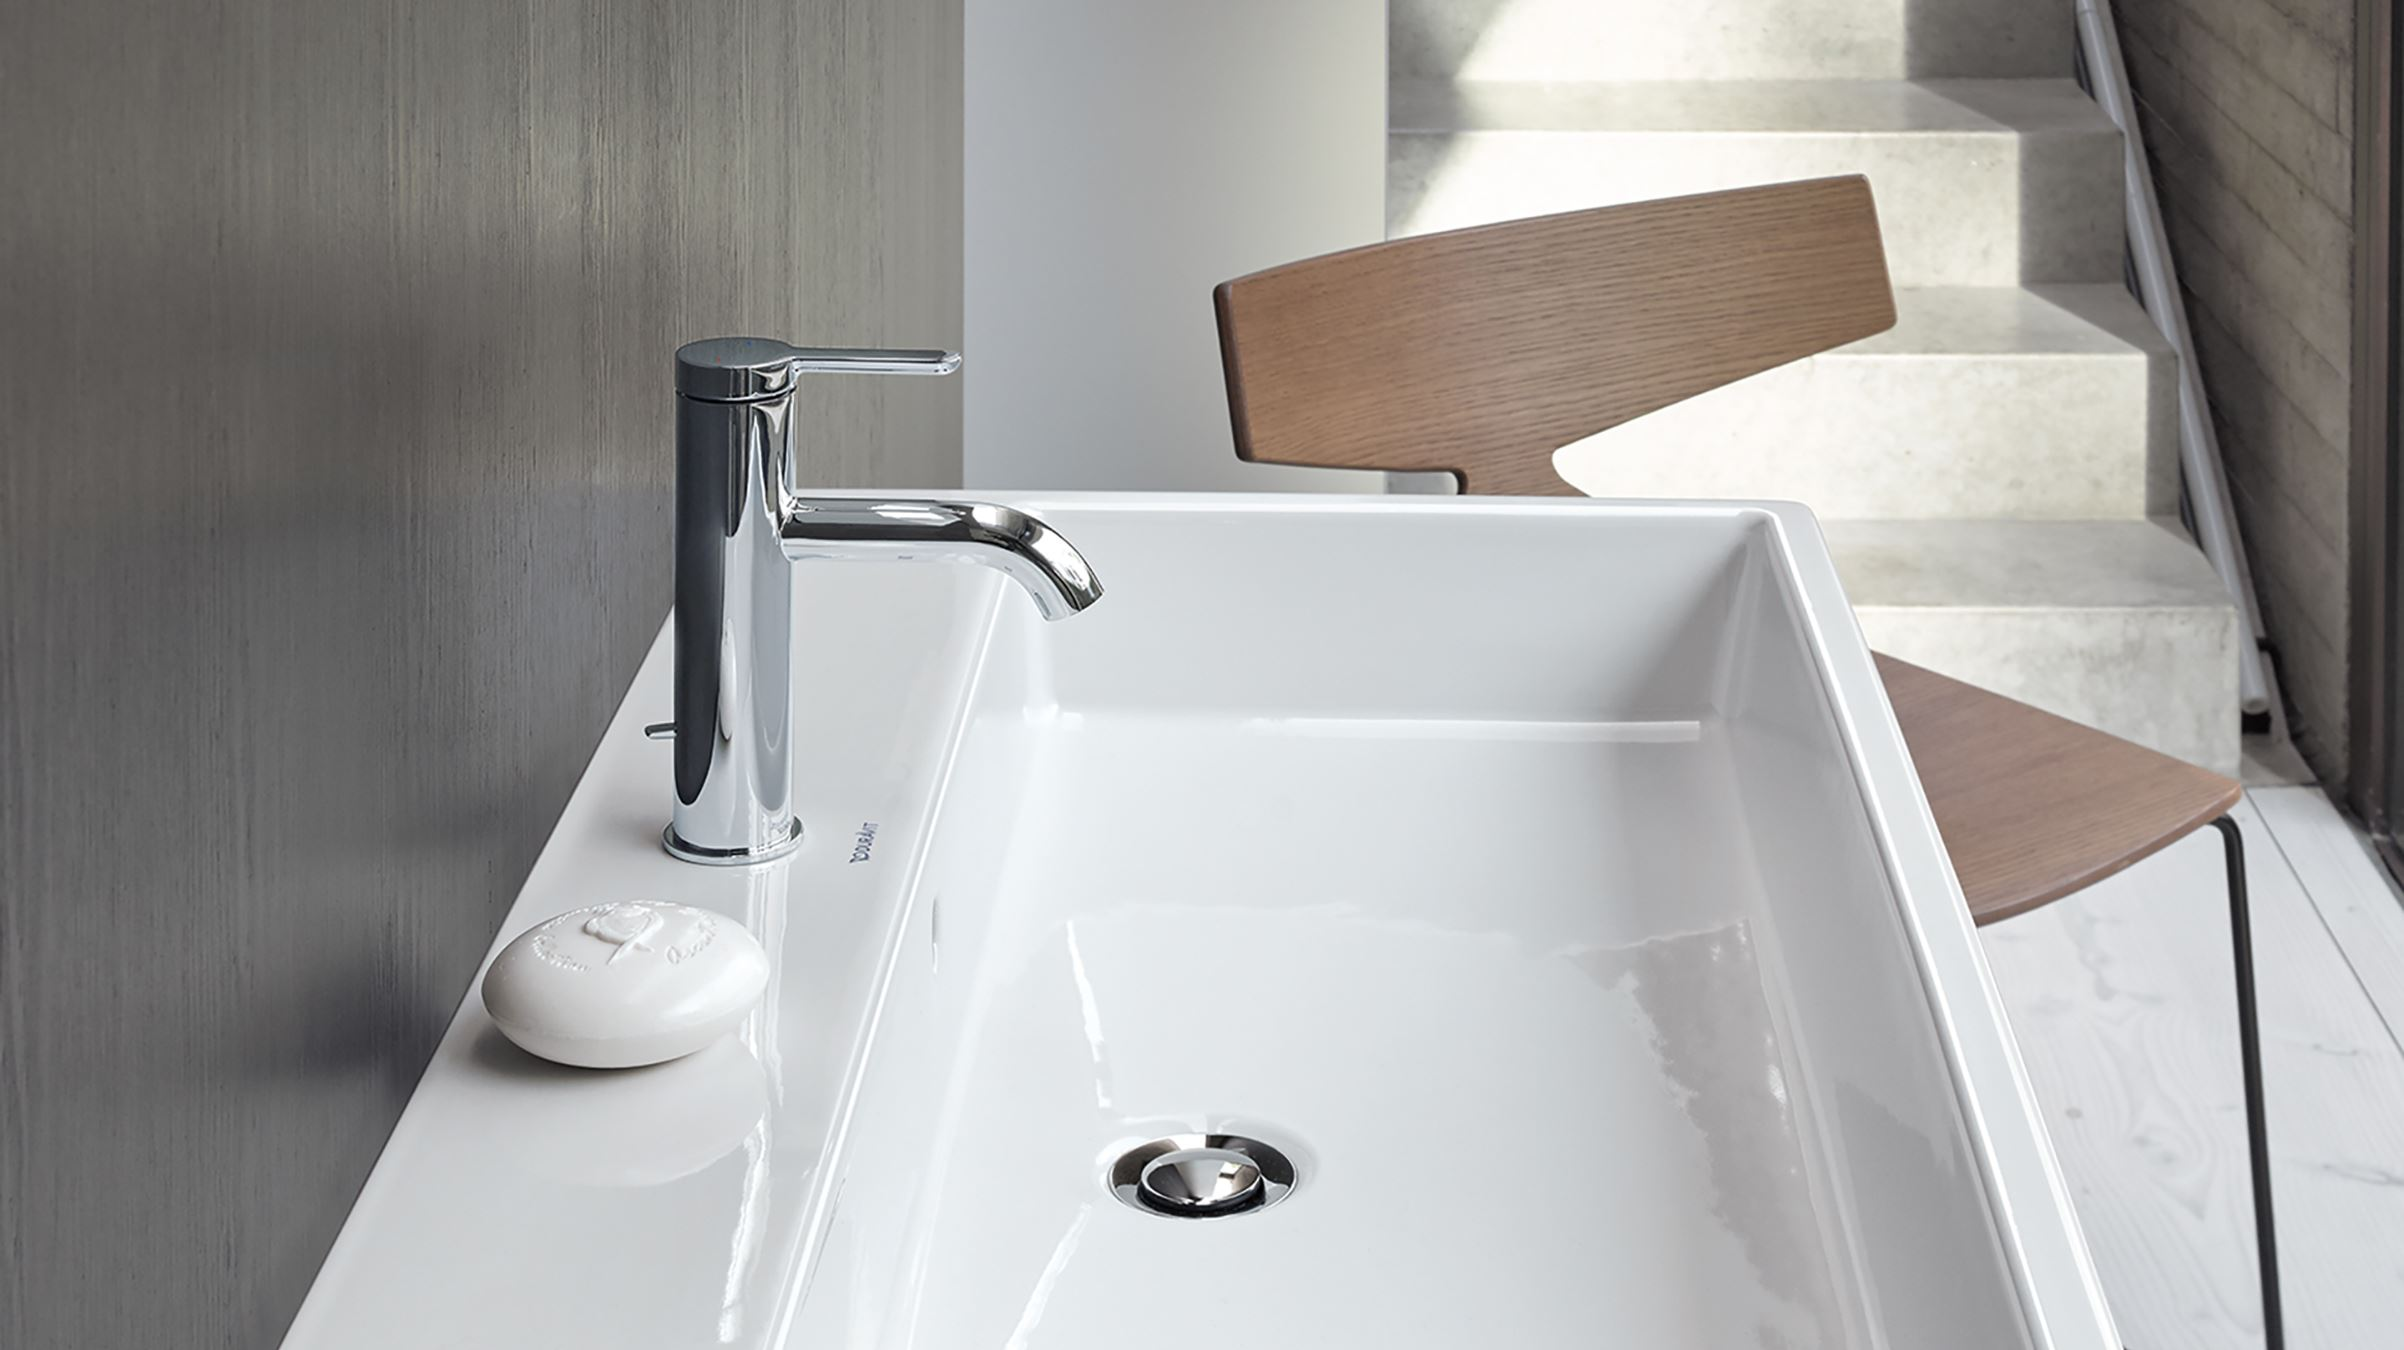 C1-by-Kurt-Merki-Jr_Duravit_10.jpg